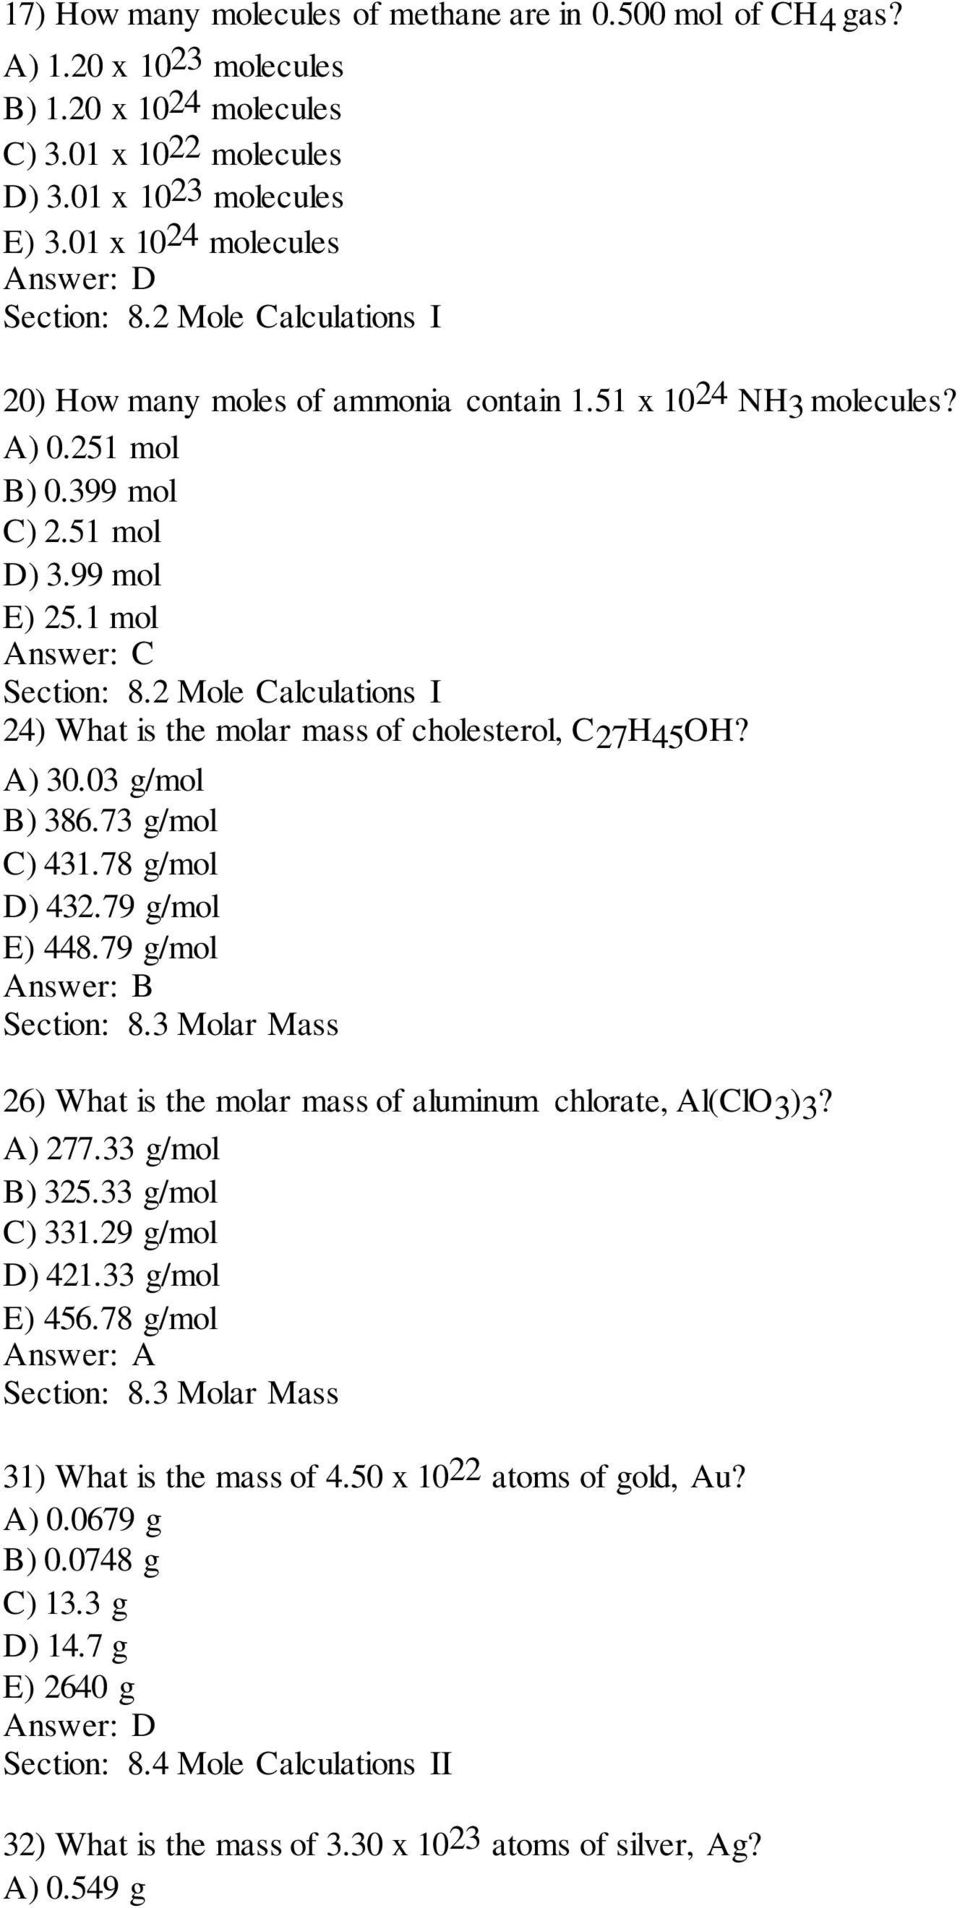 2 Mole Calculations I 24) What is the molar mass of cholesterol, C27H45OH? A) 30.03 g/mol B) 386.73 g/mol C) 431.78 g/mol D) 432.79 g/mol E) 448.79 g/mol Section: 8.